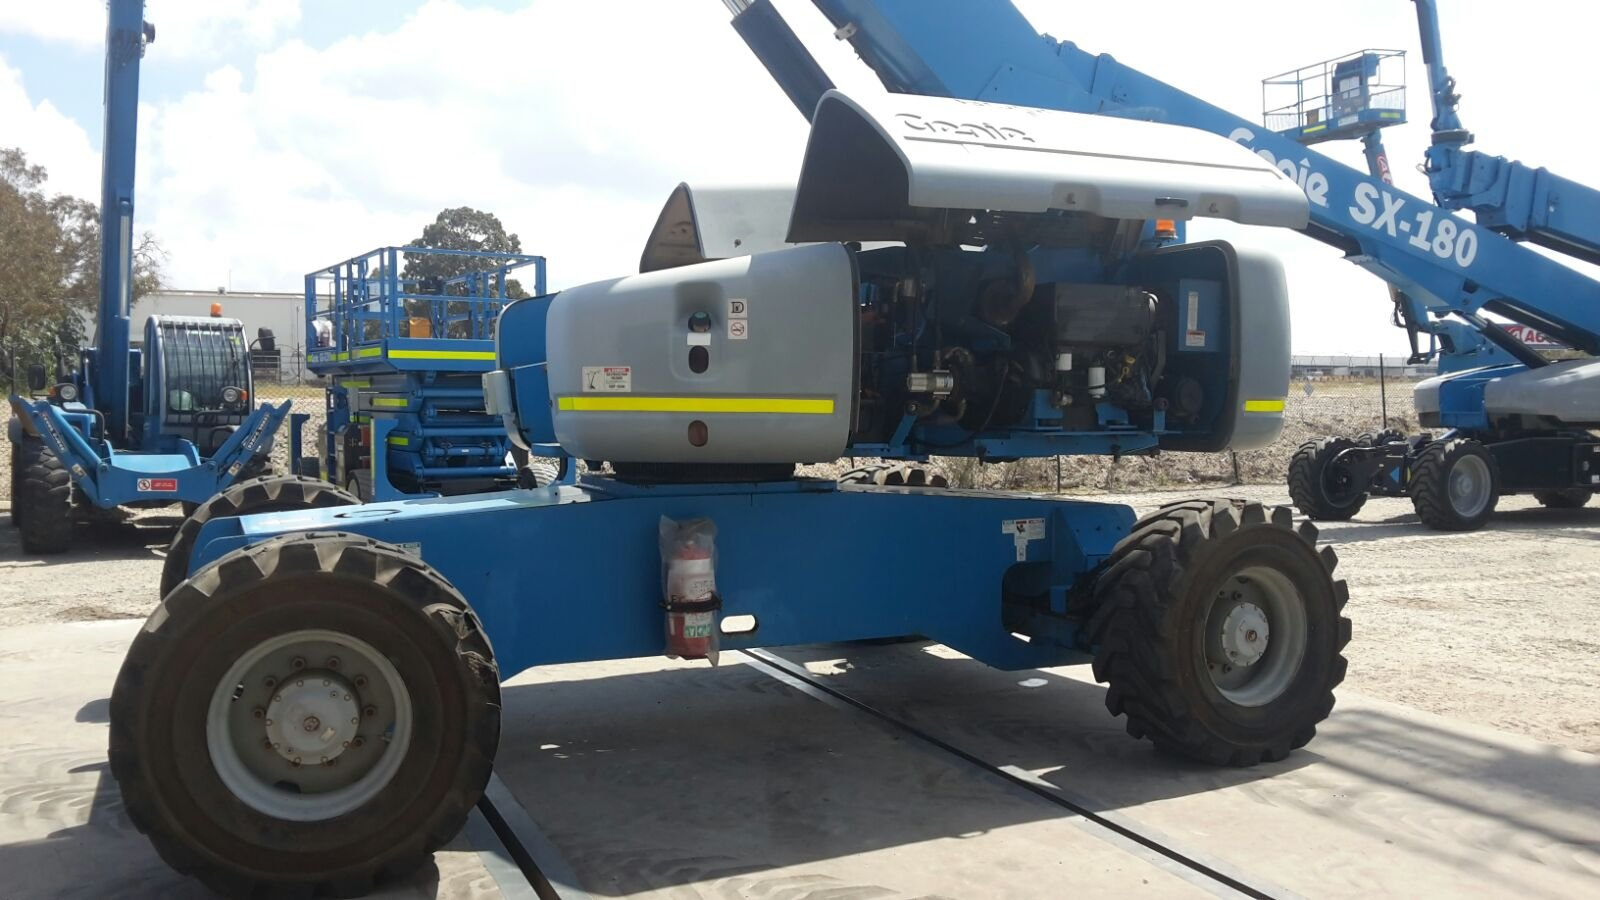 Genie S125 40m Boom lift for sales